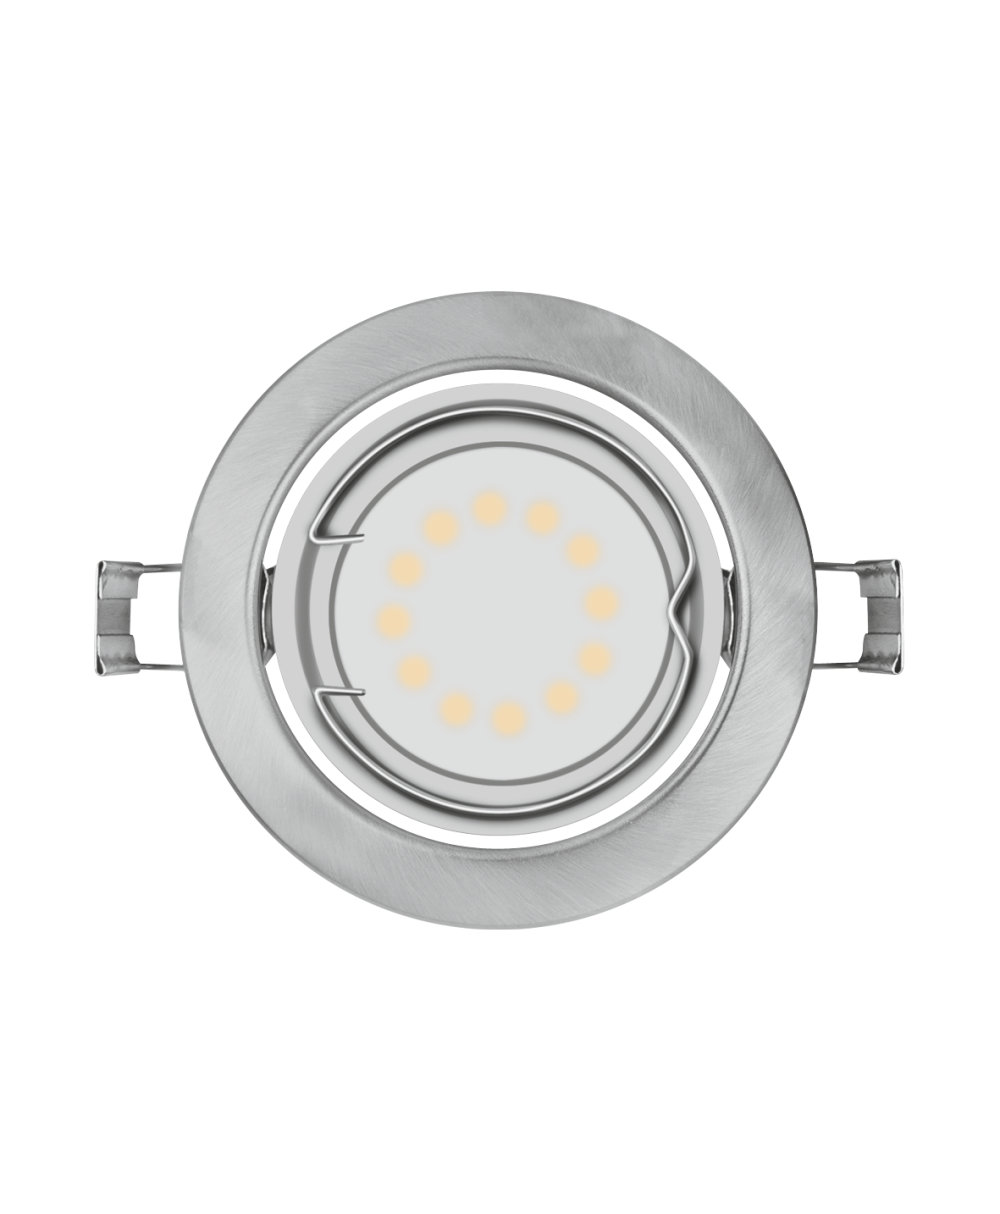 ??led Spots And Downlights Osram Lamps